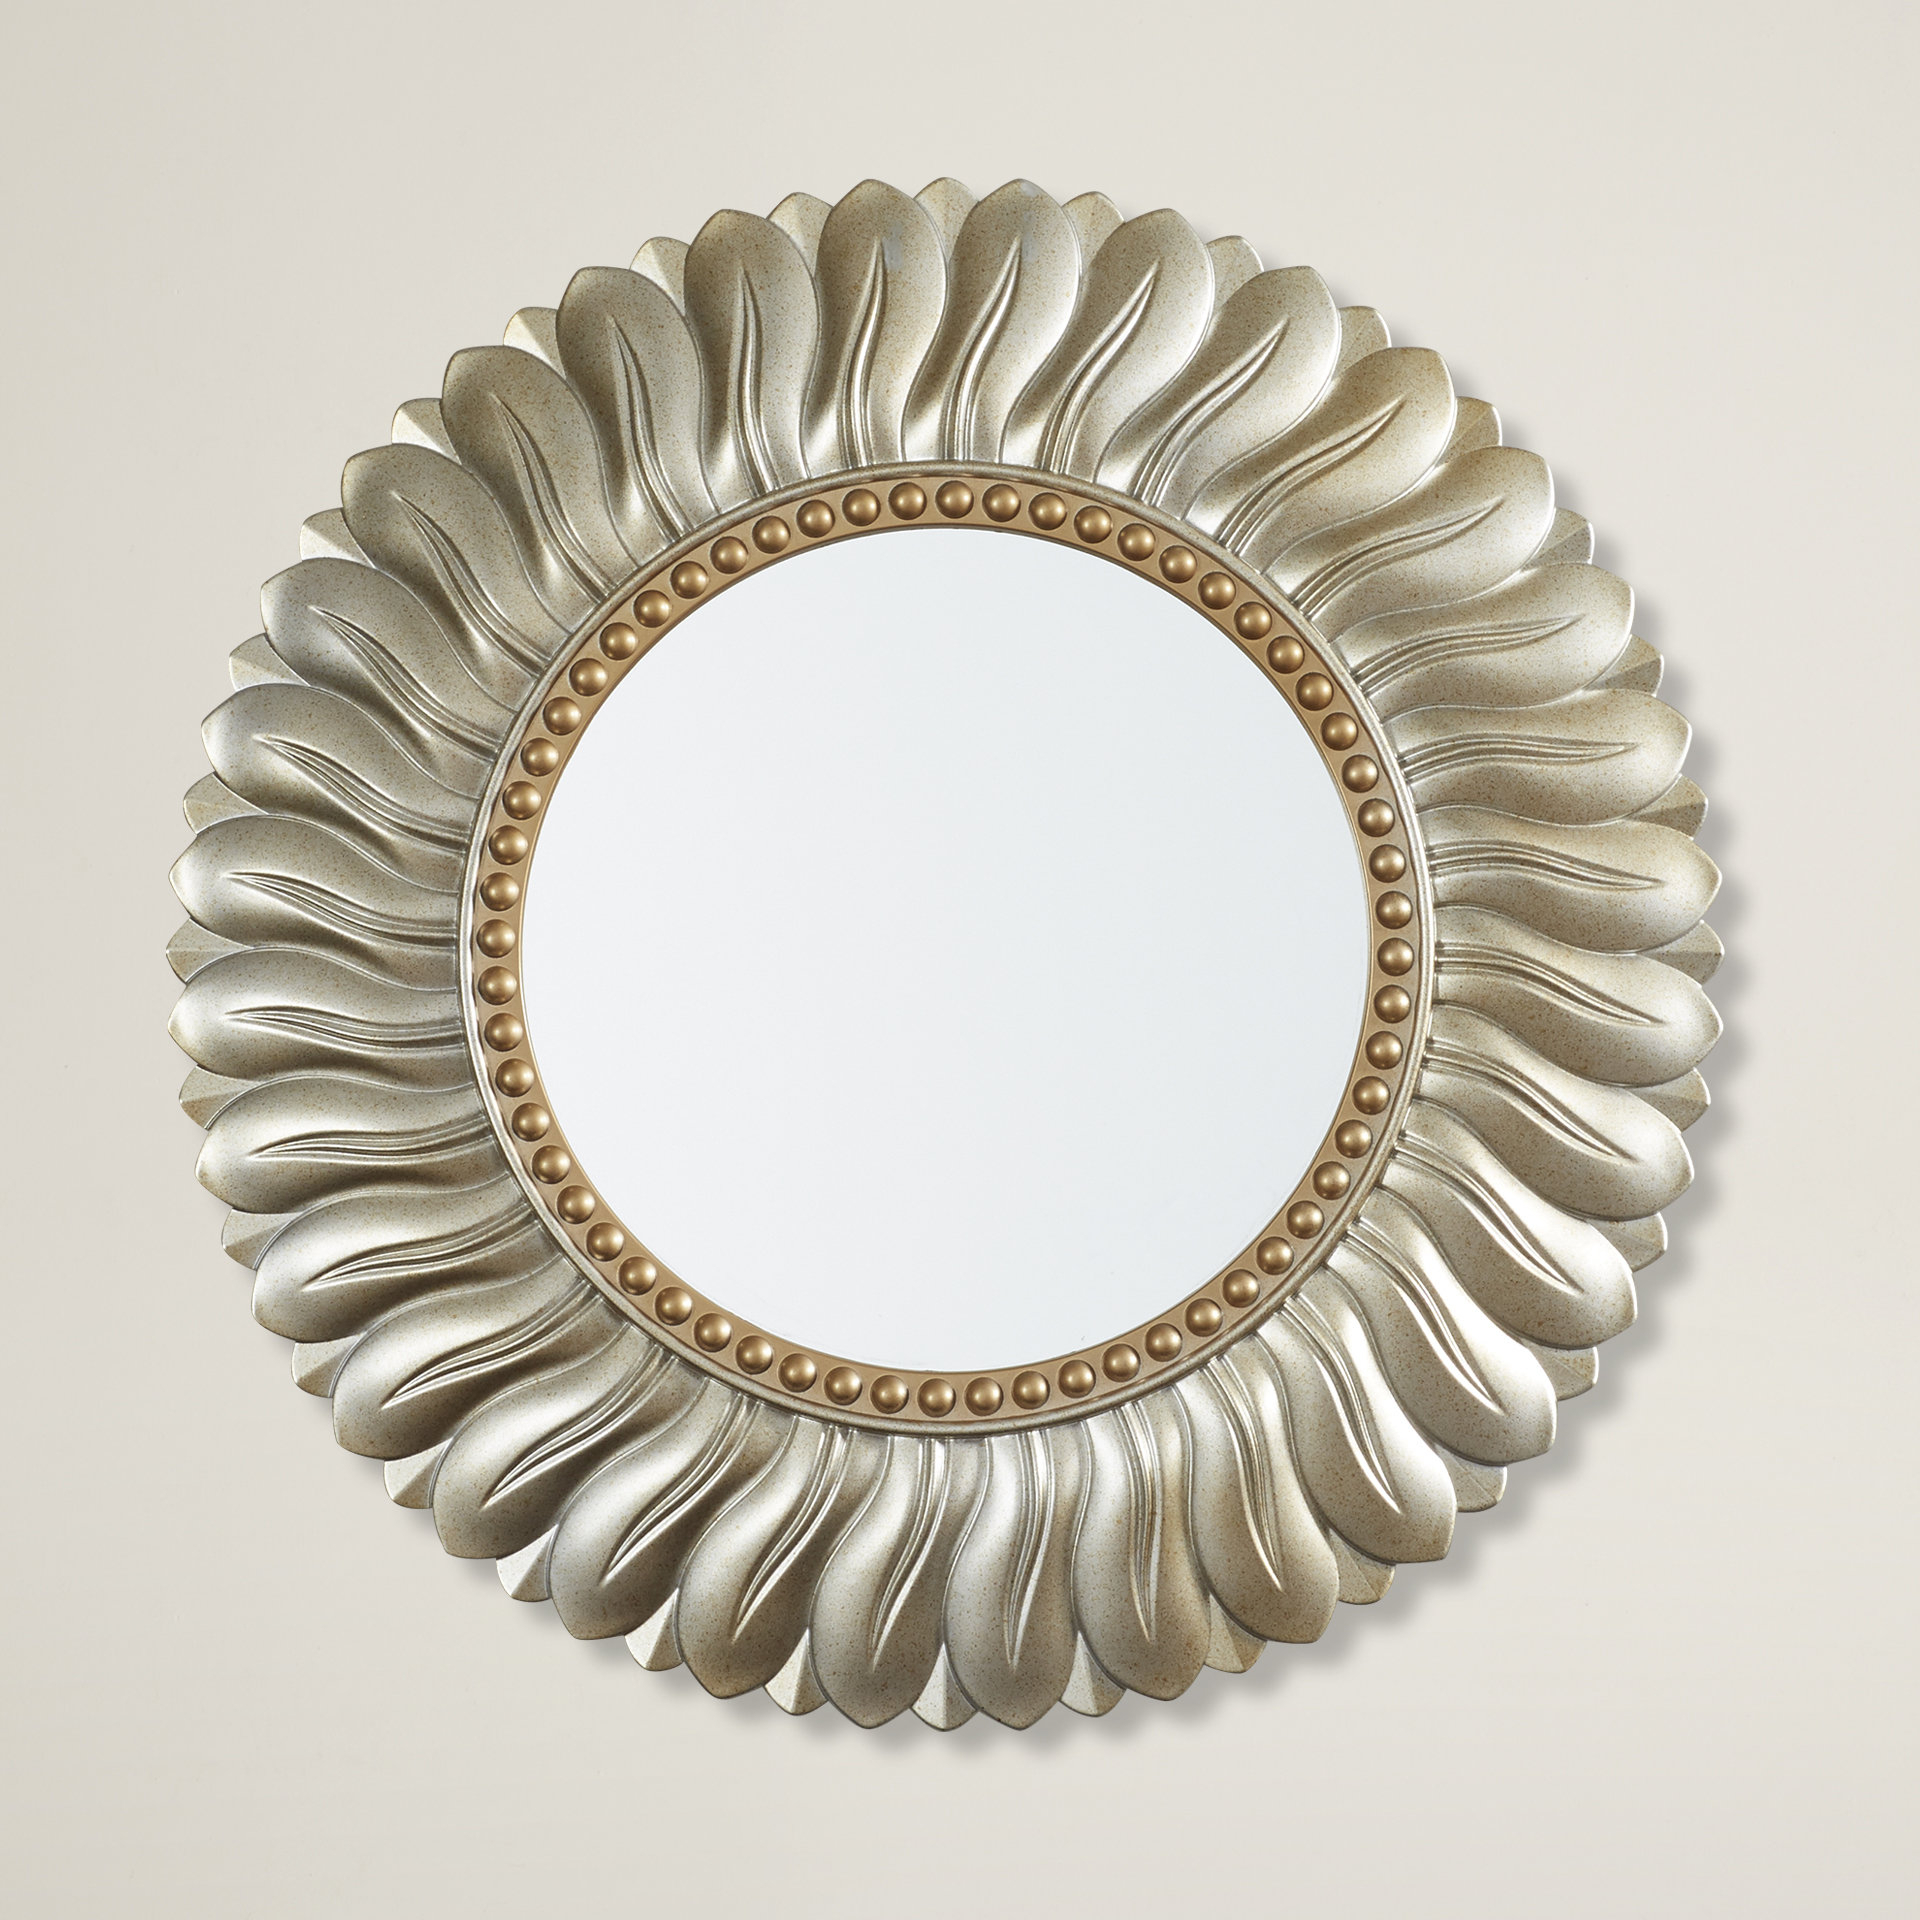 Karn Vertical Round Resin Wall Mirror Within Karn Vertical Round Resin Wall Mirrors (Image 8 of 20)